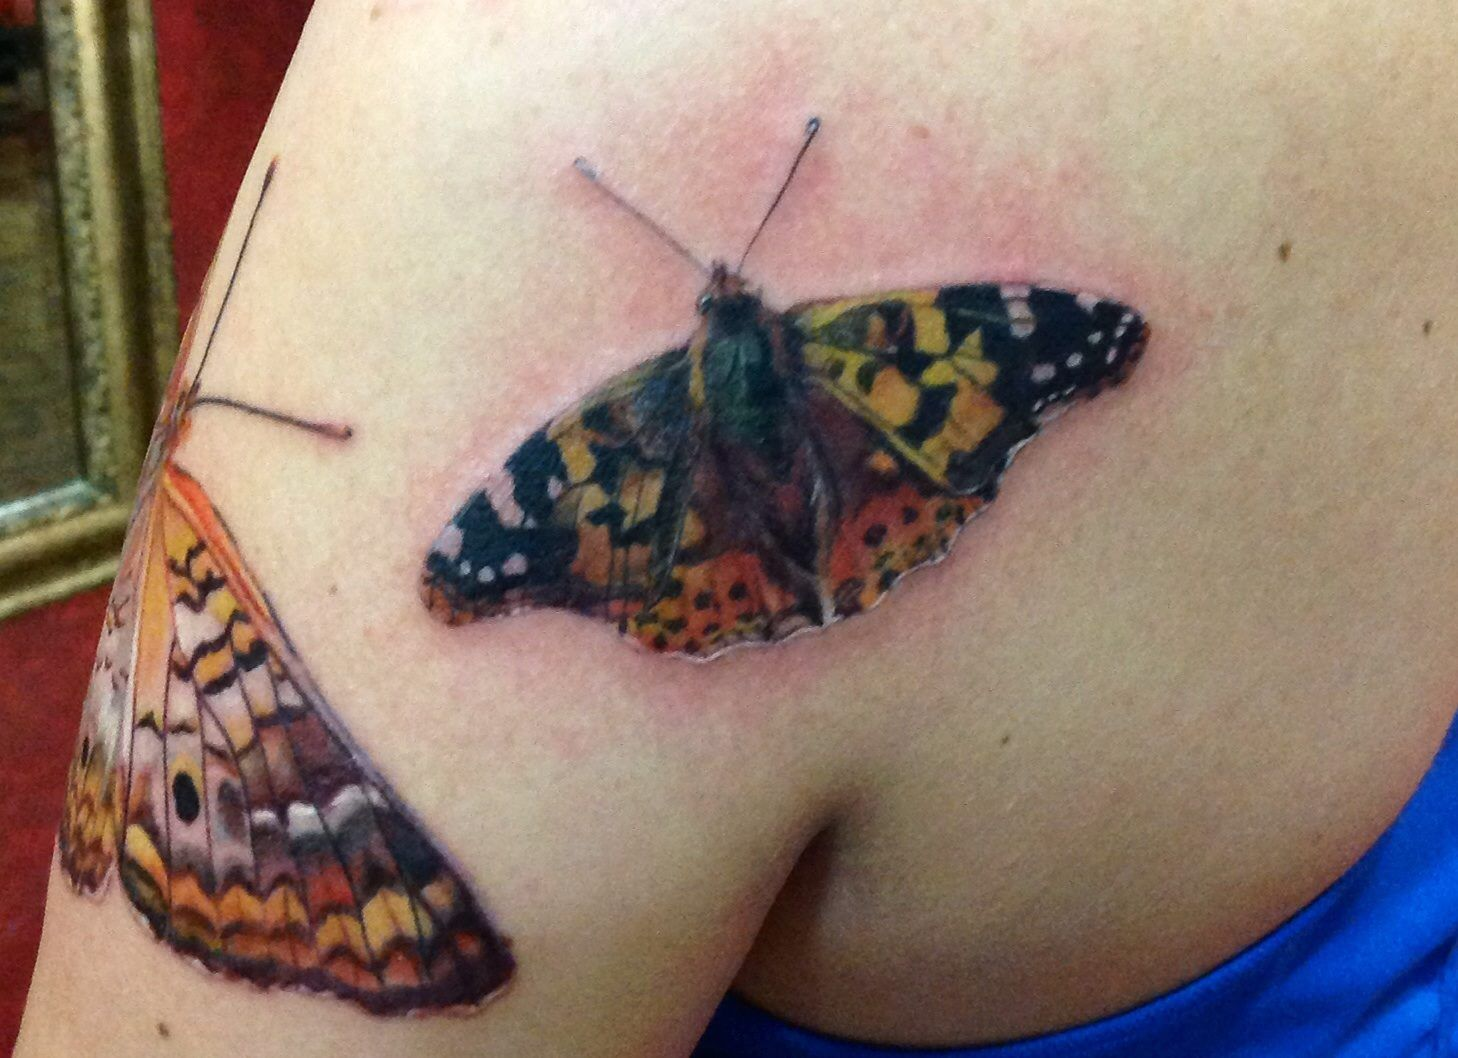 4th Butterfly Tattoo (these are on me) - this one is the Painted Lady Butterfly - realistic butterfly tattoo